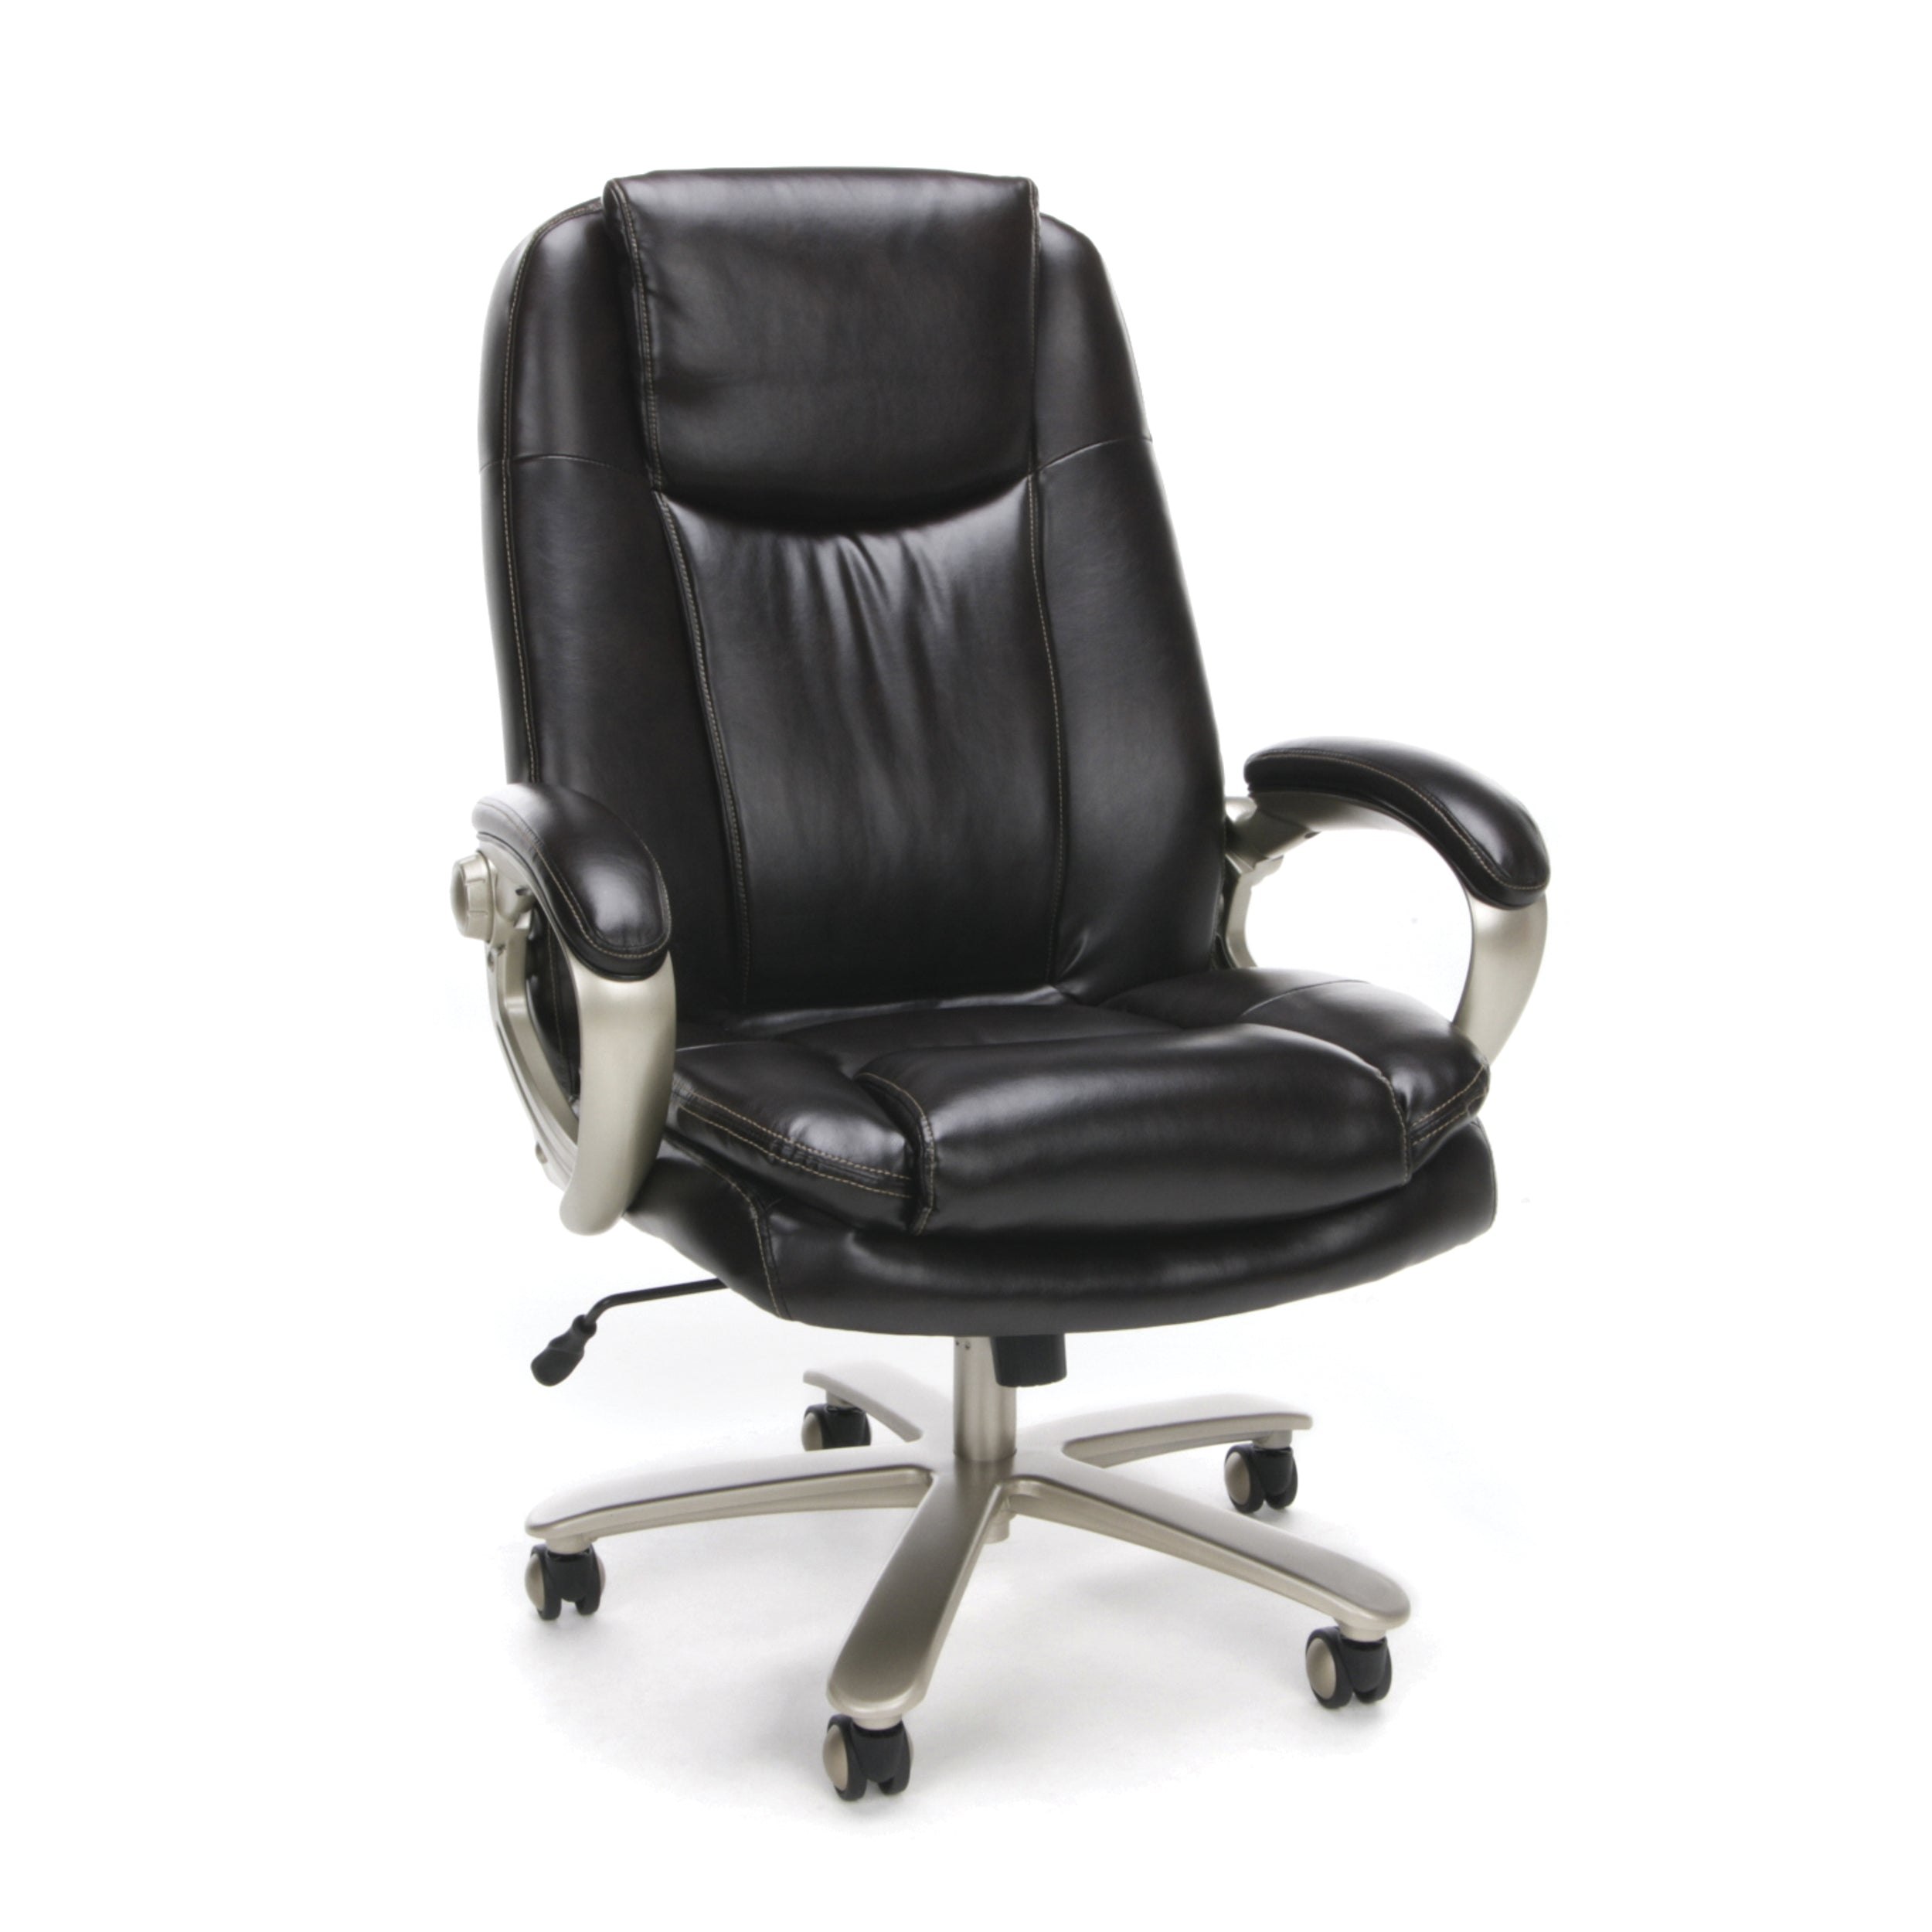 Model ESS-201 Essentials by OFM Big and Tall Leather Executive Chair